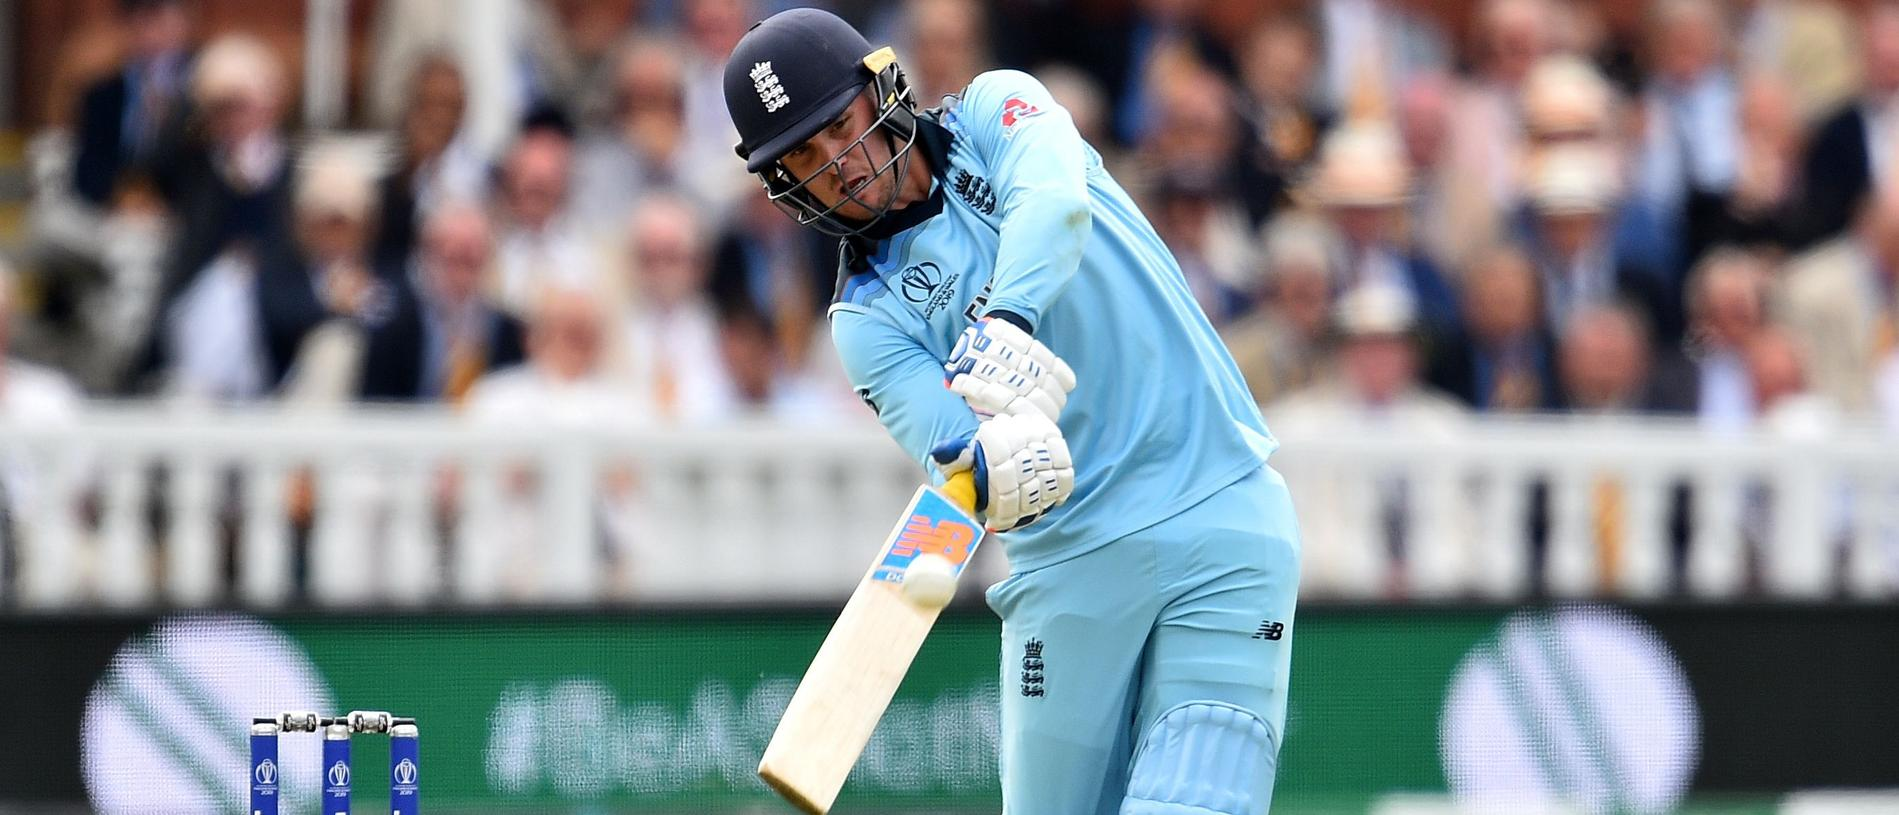 England's Jason Roy plays a shot during the 2019 Cricket World Cup final between England and New Zealand at Lord's Cricket Ground in London on July 14, 2019. (Photo by Glyn KIRK / AFP) / RESTRICTED TO EDITORIAL USE